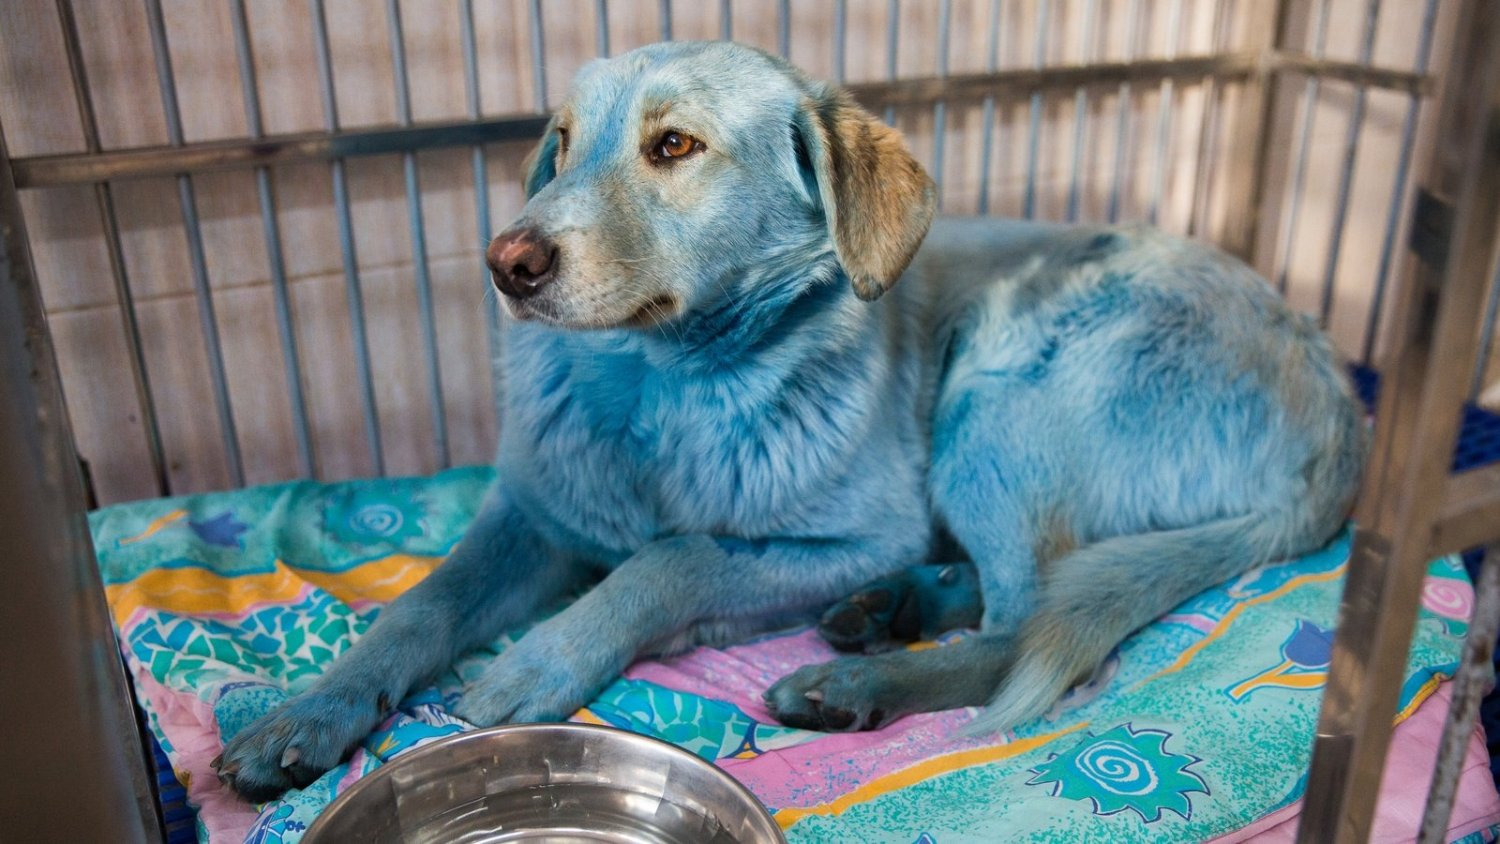 Stray Blue Dogs - A Strange Occurrence Observed Near An Abandoned Factory